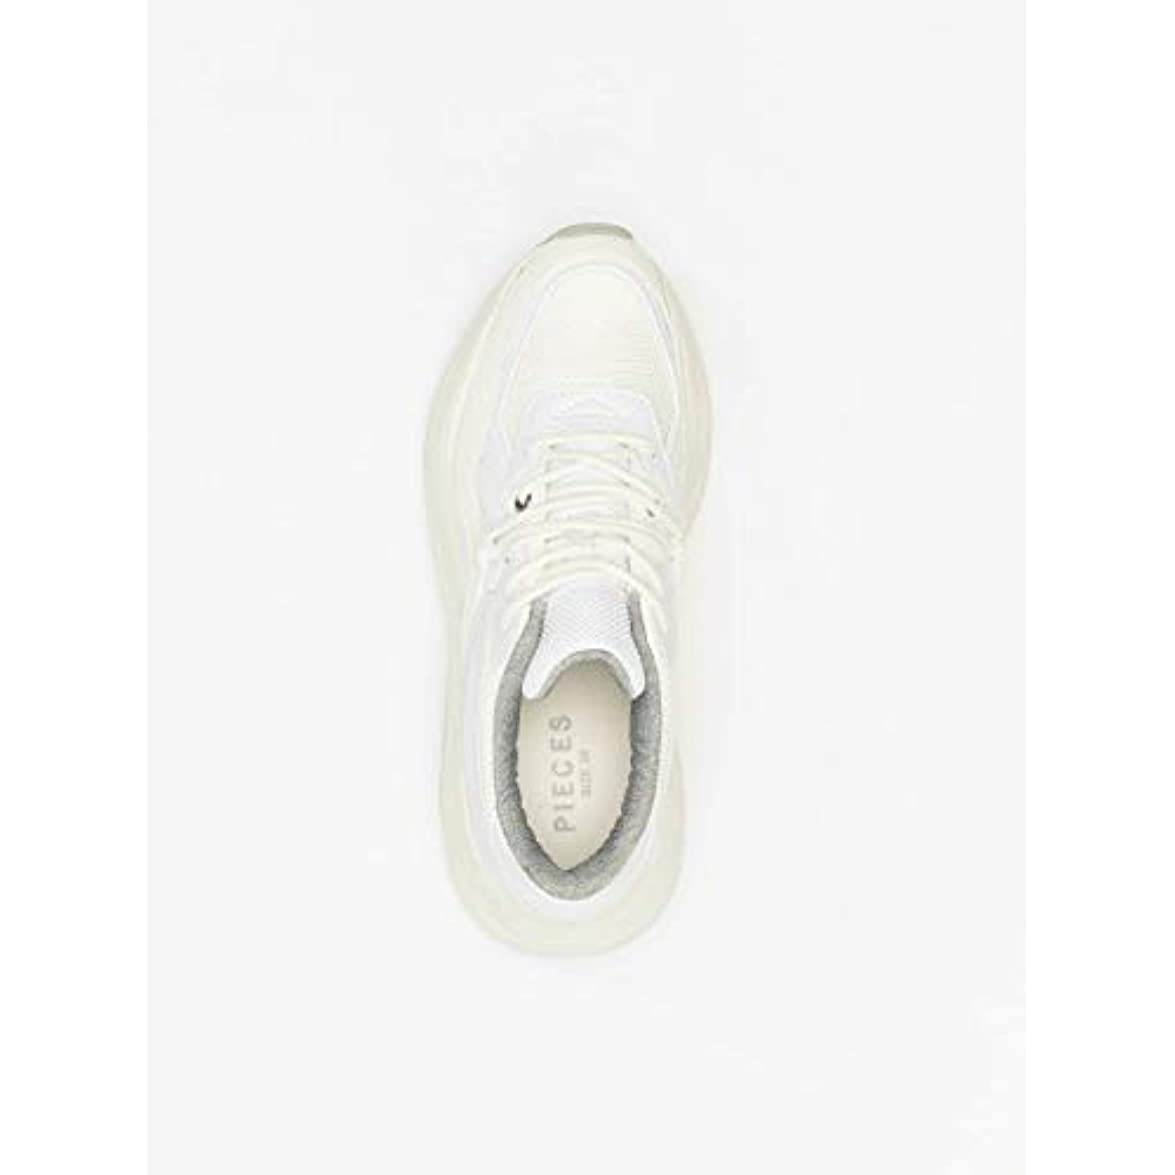 17095086 Scarpa White Sneakers Donna Pieces